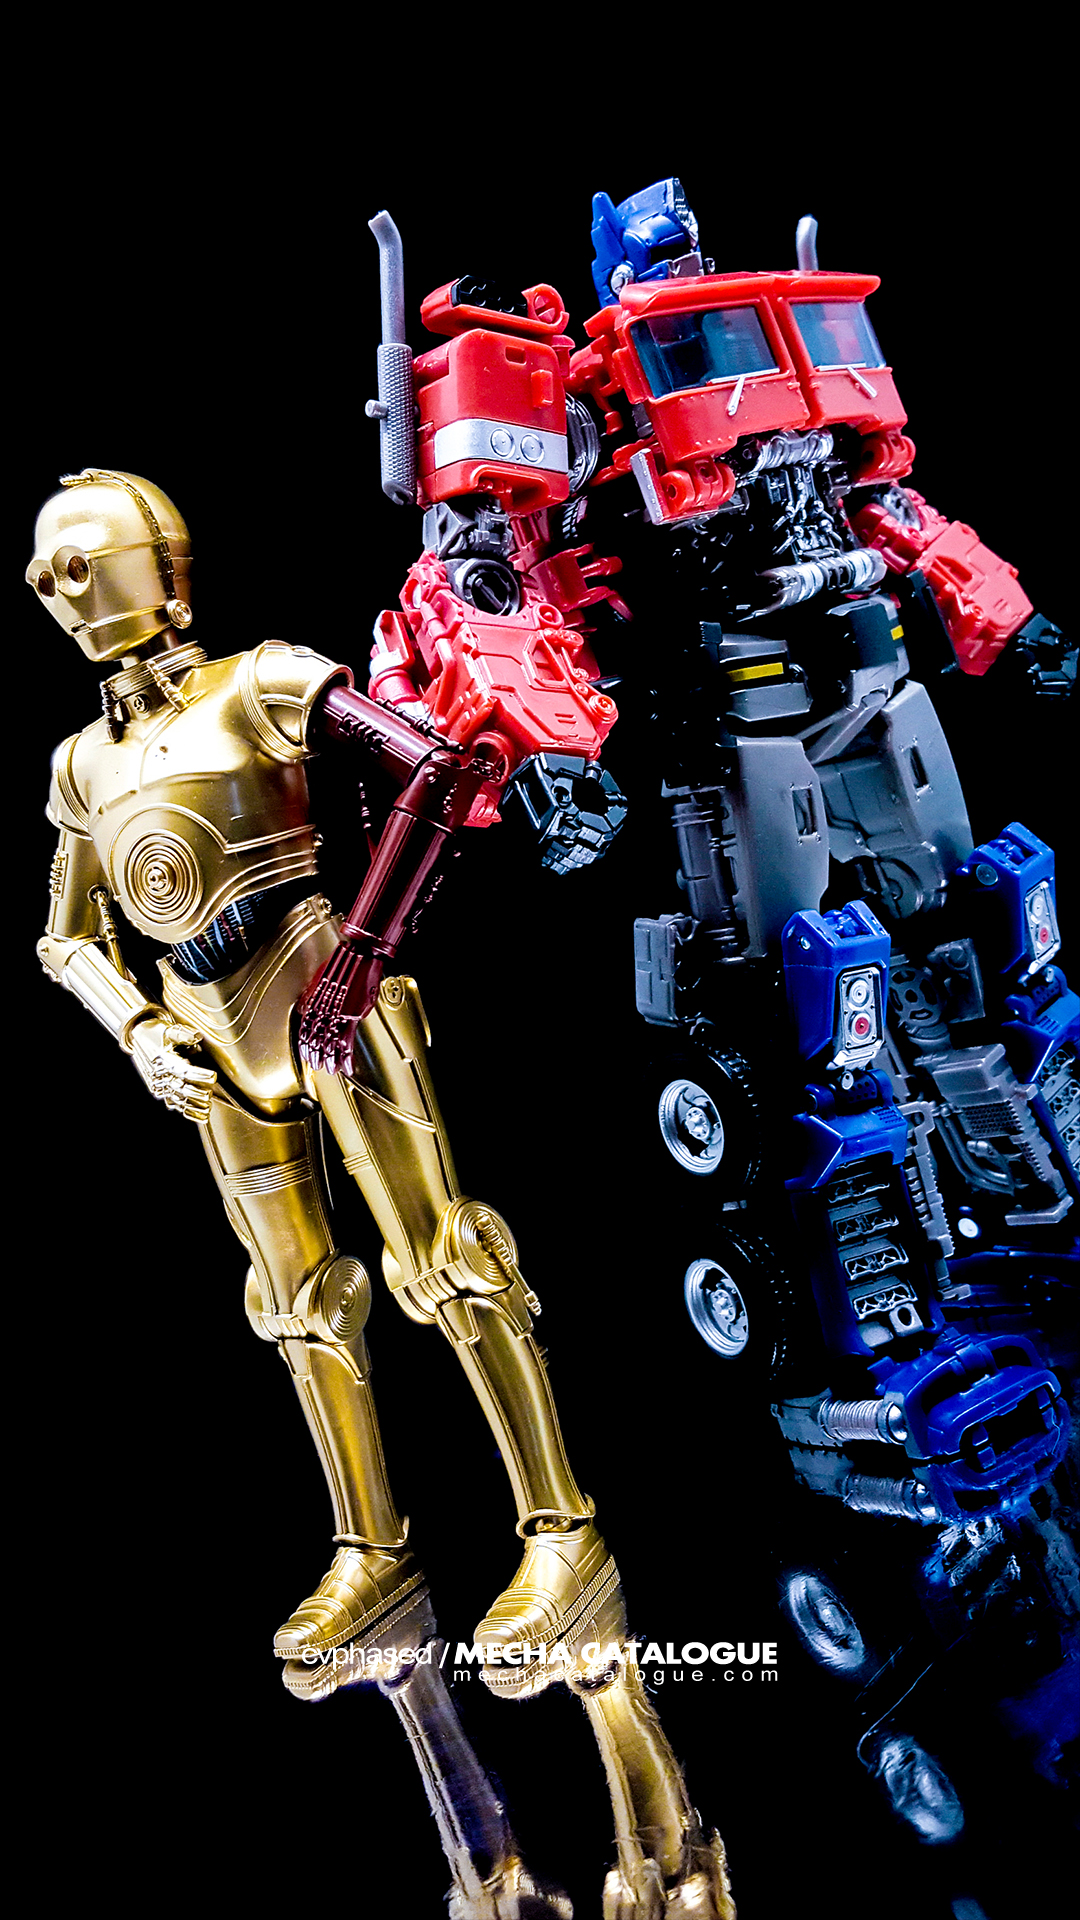 The Next CATALOGUE Entries: C-3P0 × Optimus Prime